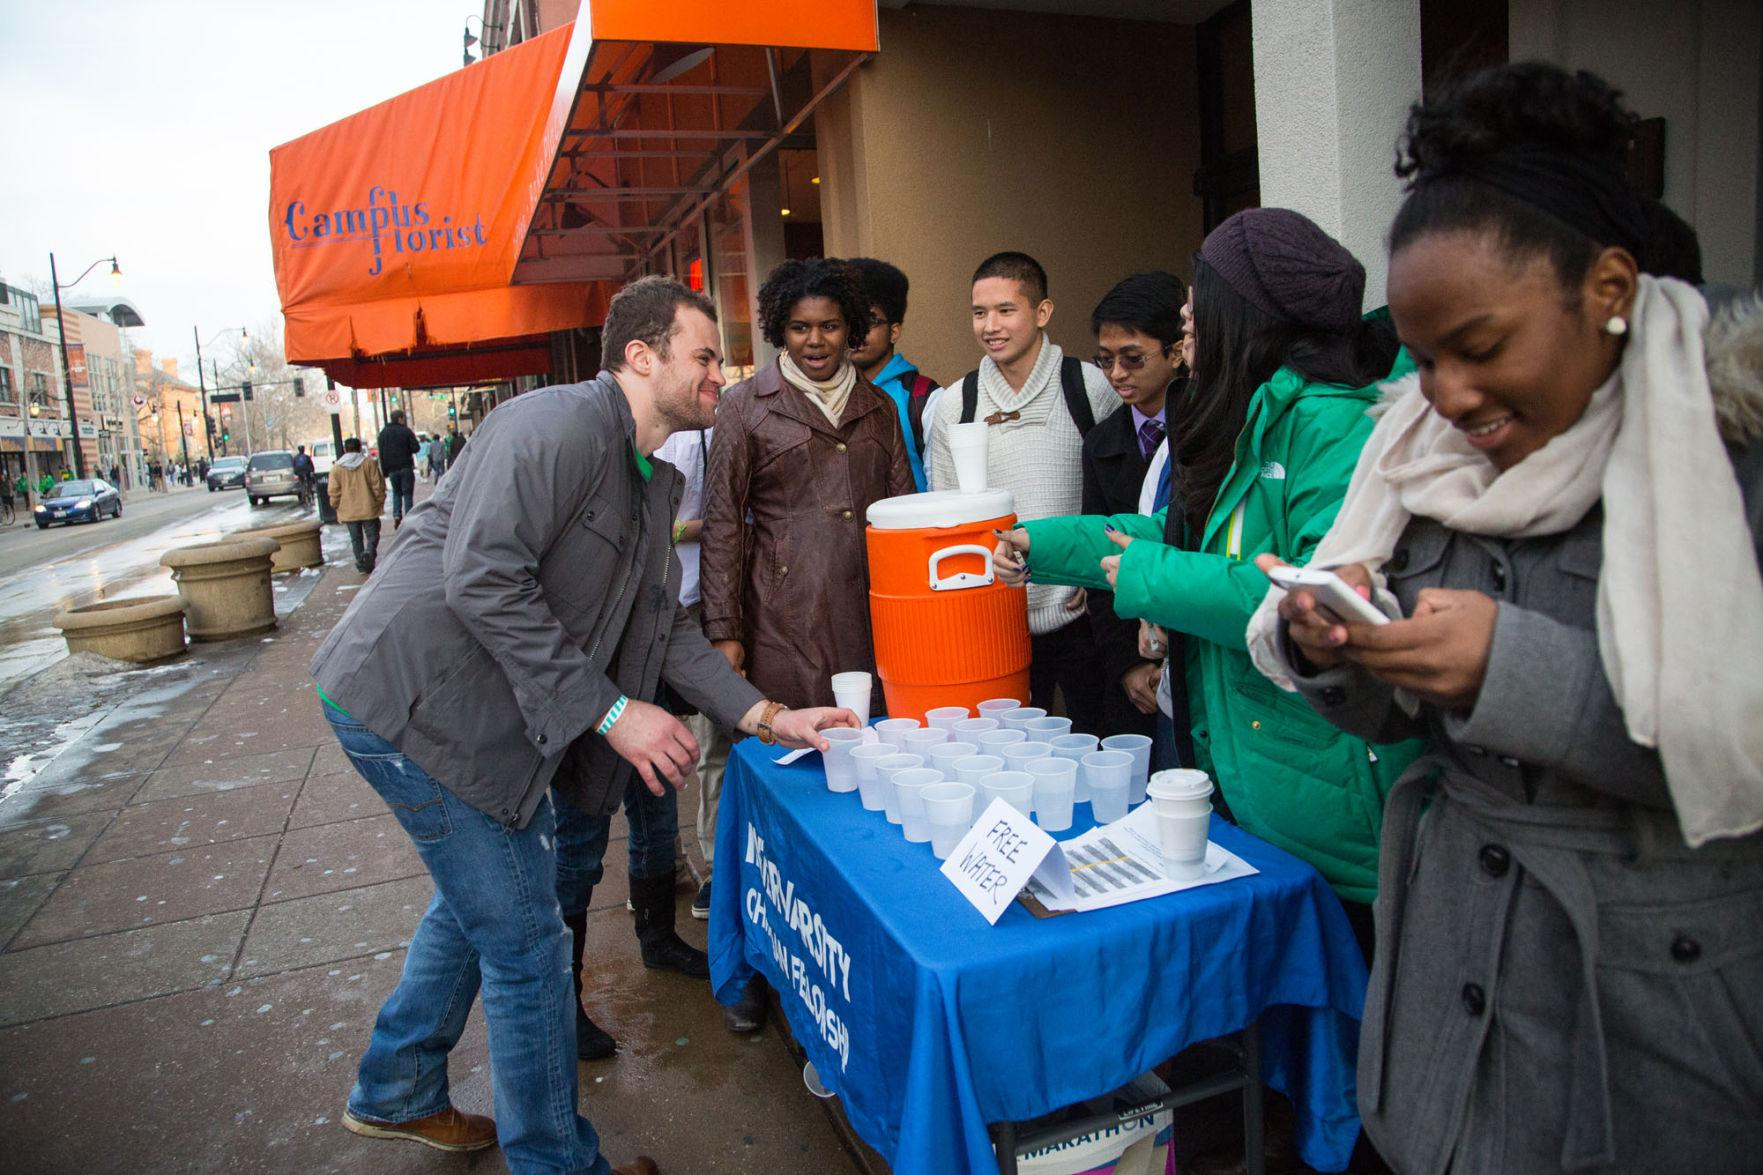 Members of Intervarsity Christian Fellowship hand out cups of water on Green Street during Unofficial St. Patricks Day.